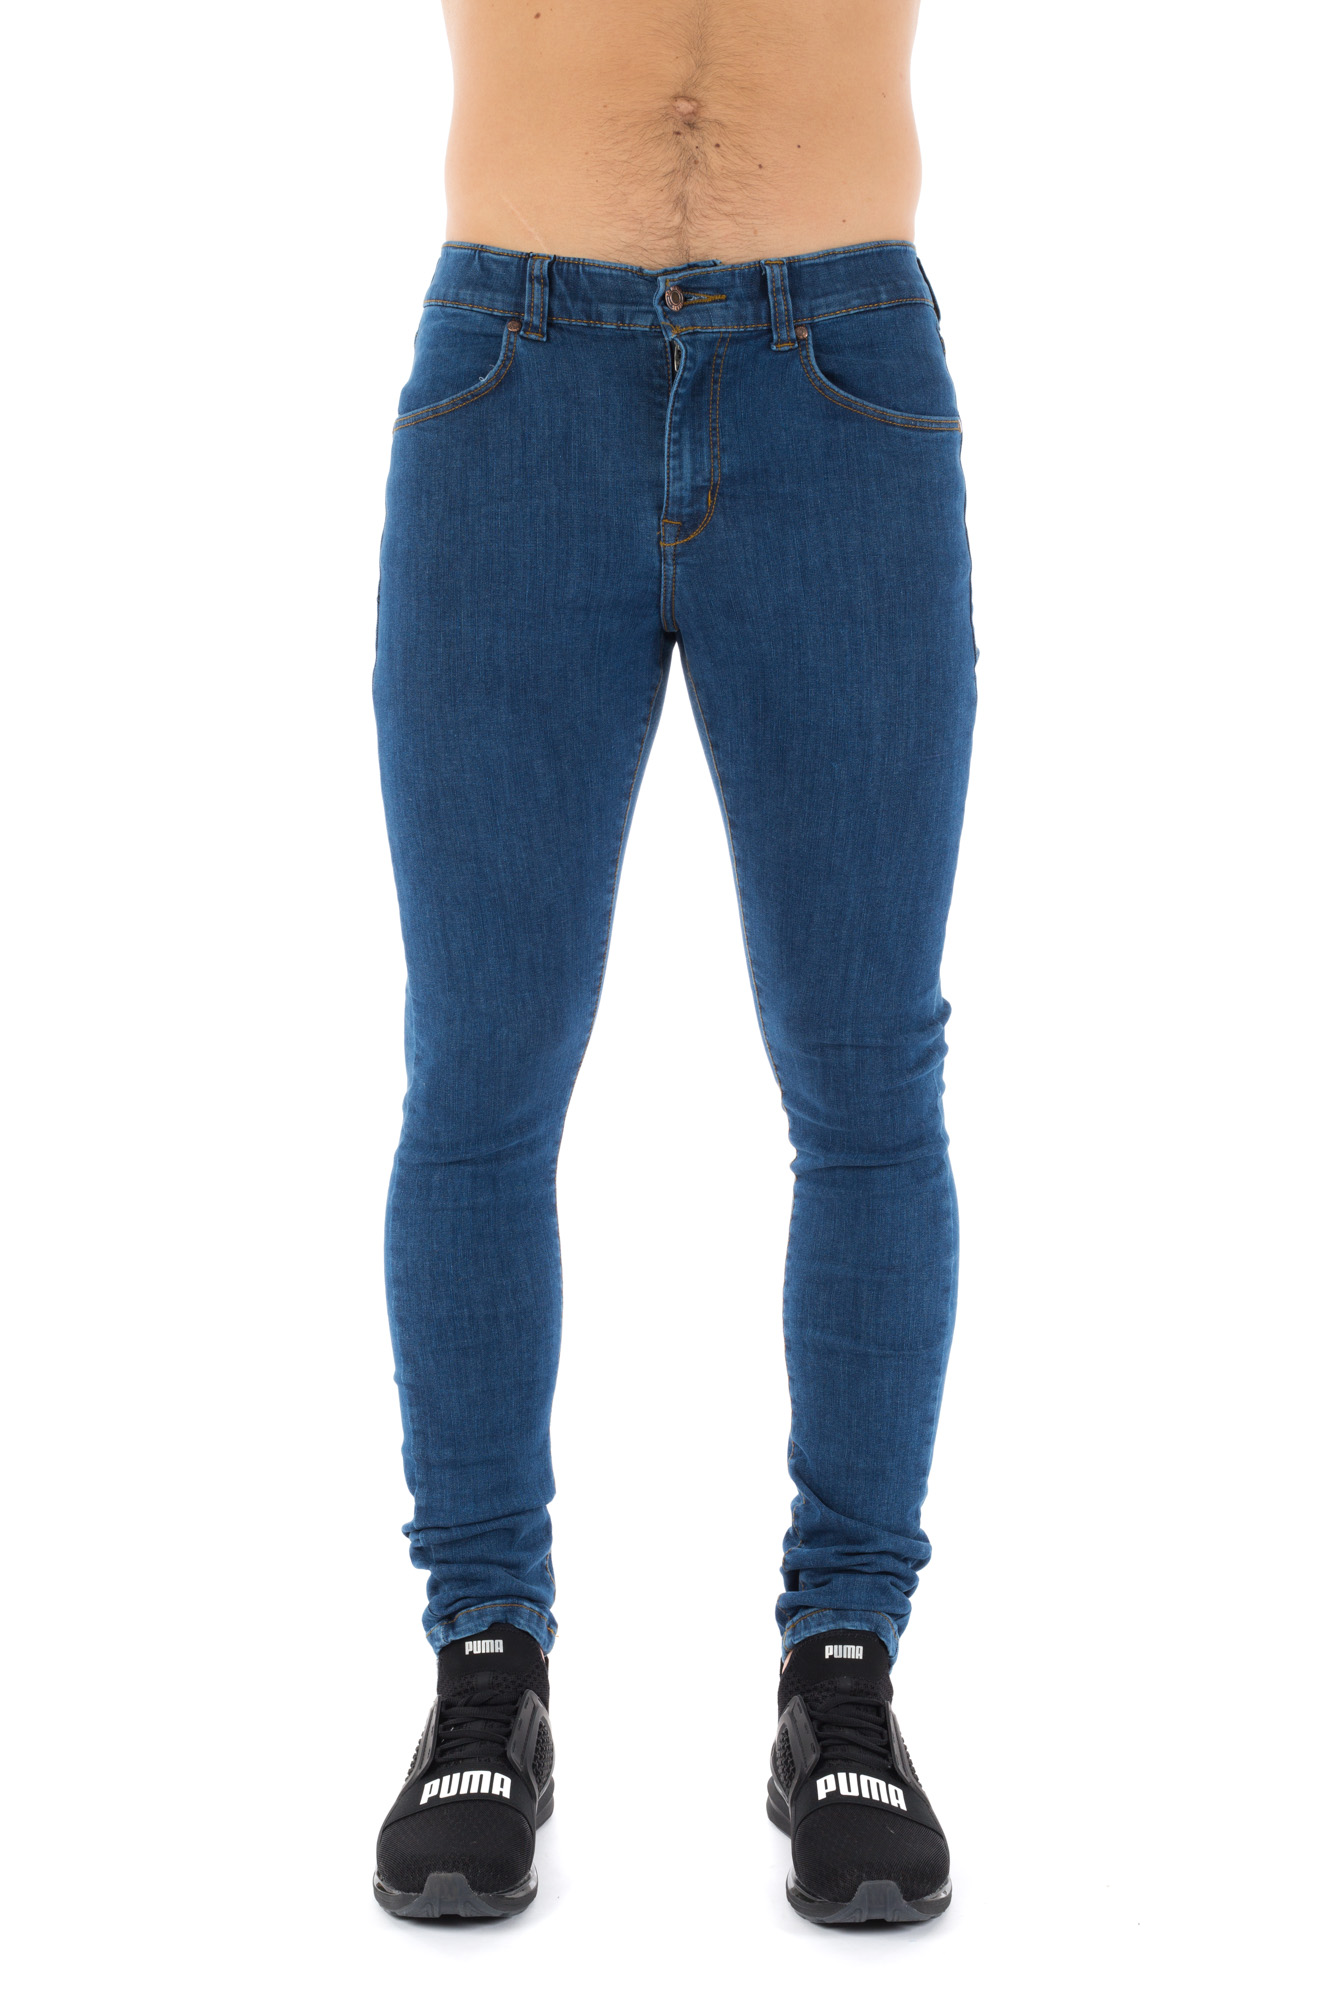 Dr. Denim - Basic Skinny Jeans